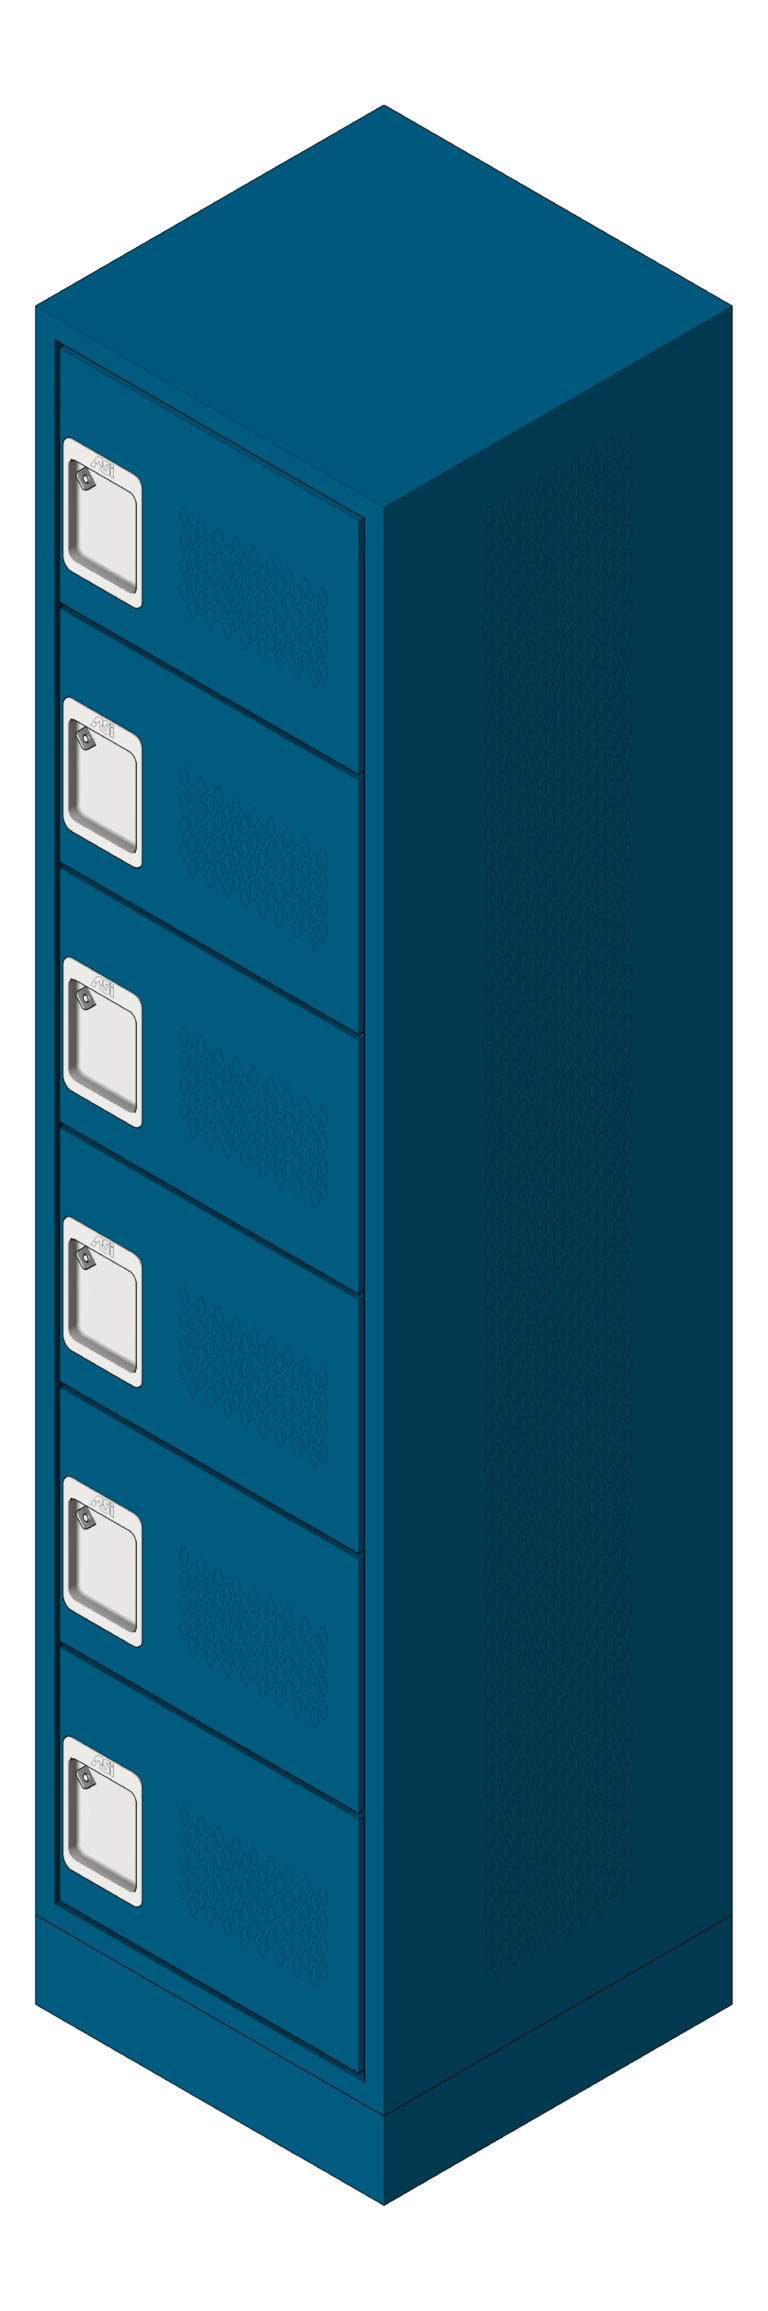 Locker_Metal_ASI_Competitor_SixTier_3D Shaded